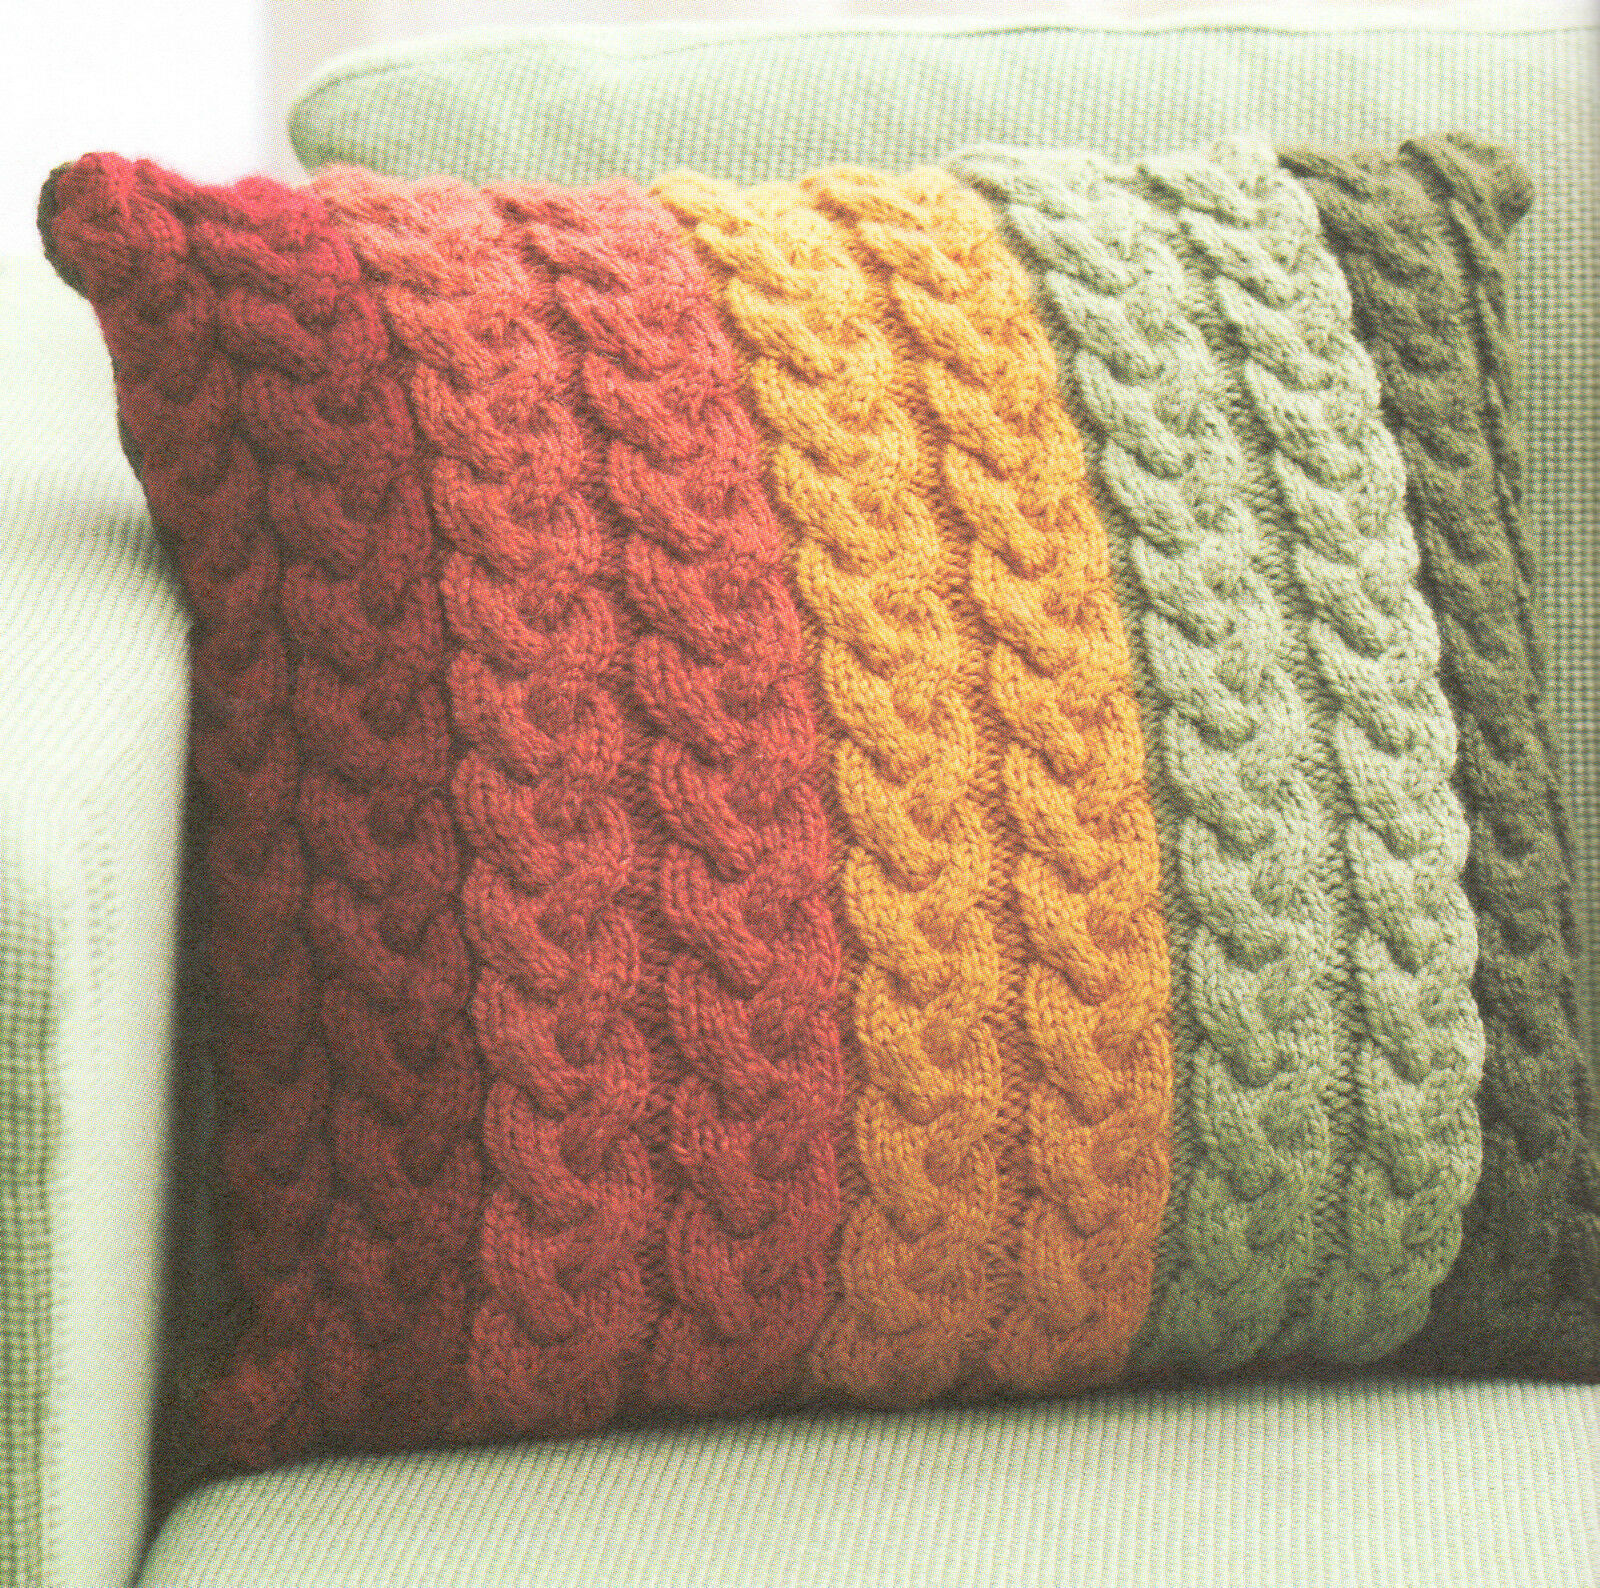 Double Knitting Yarn Australian Equivalent : Chunky wool cable cushion knitting pattern quot knit in